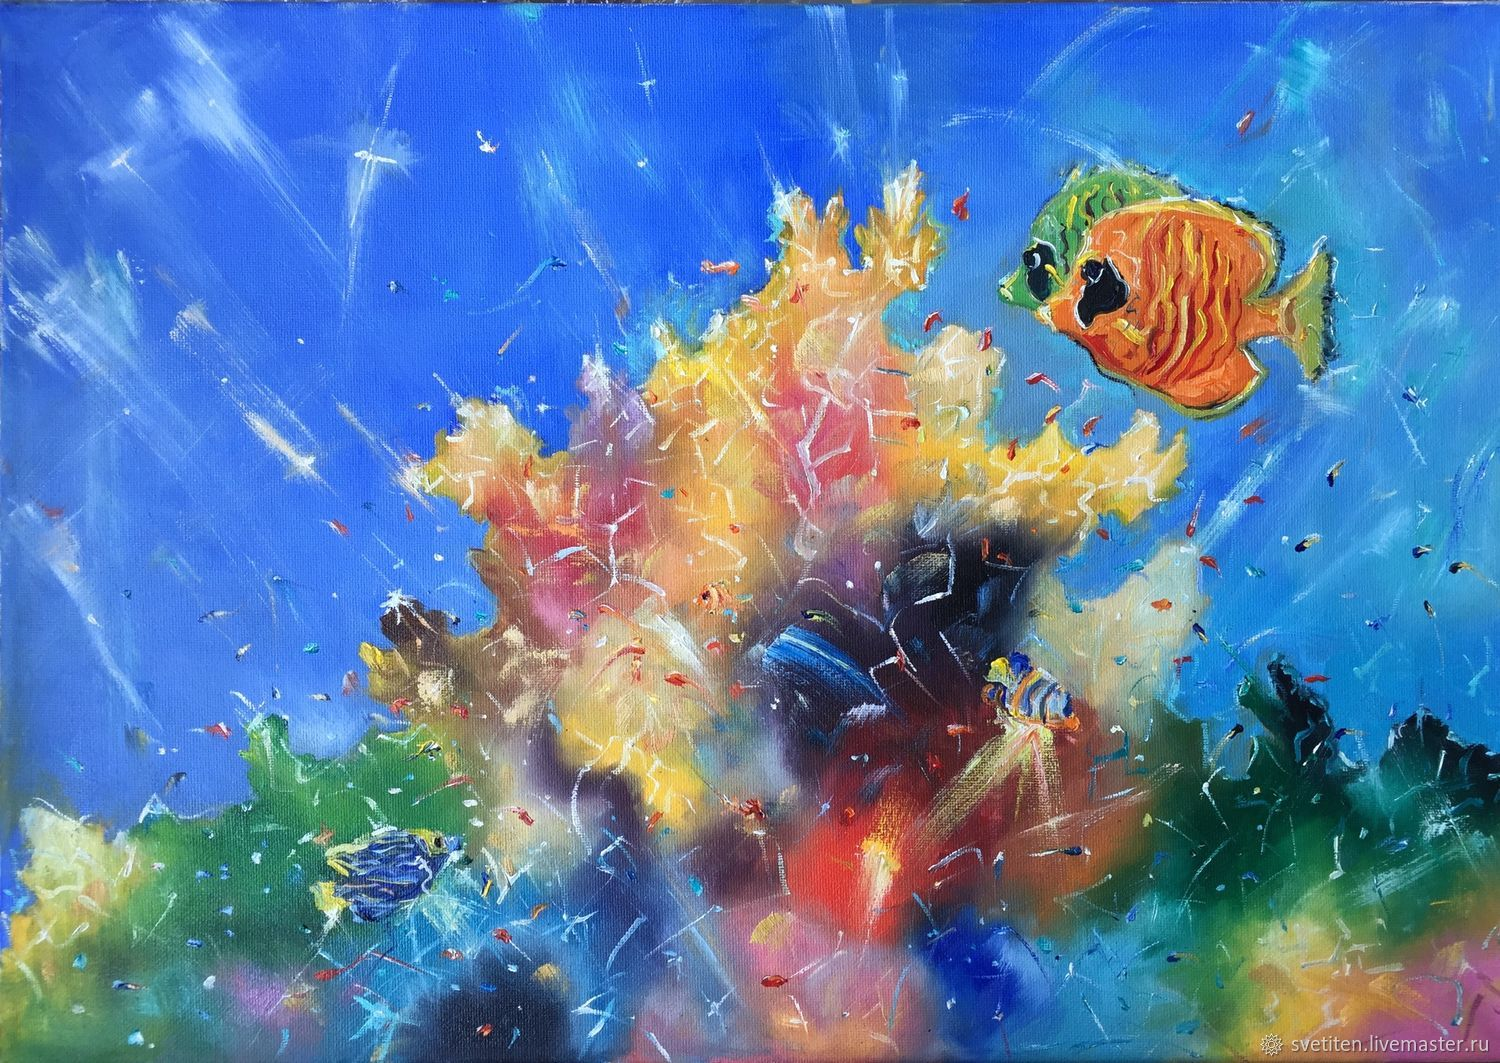 Author's painting 'underwater Kingdom', 35 by 50 cm, Pictures, Moscow,  Фото №1